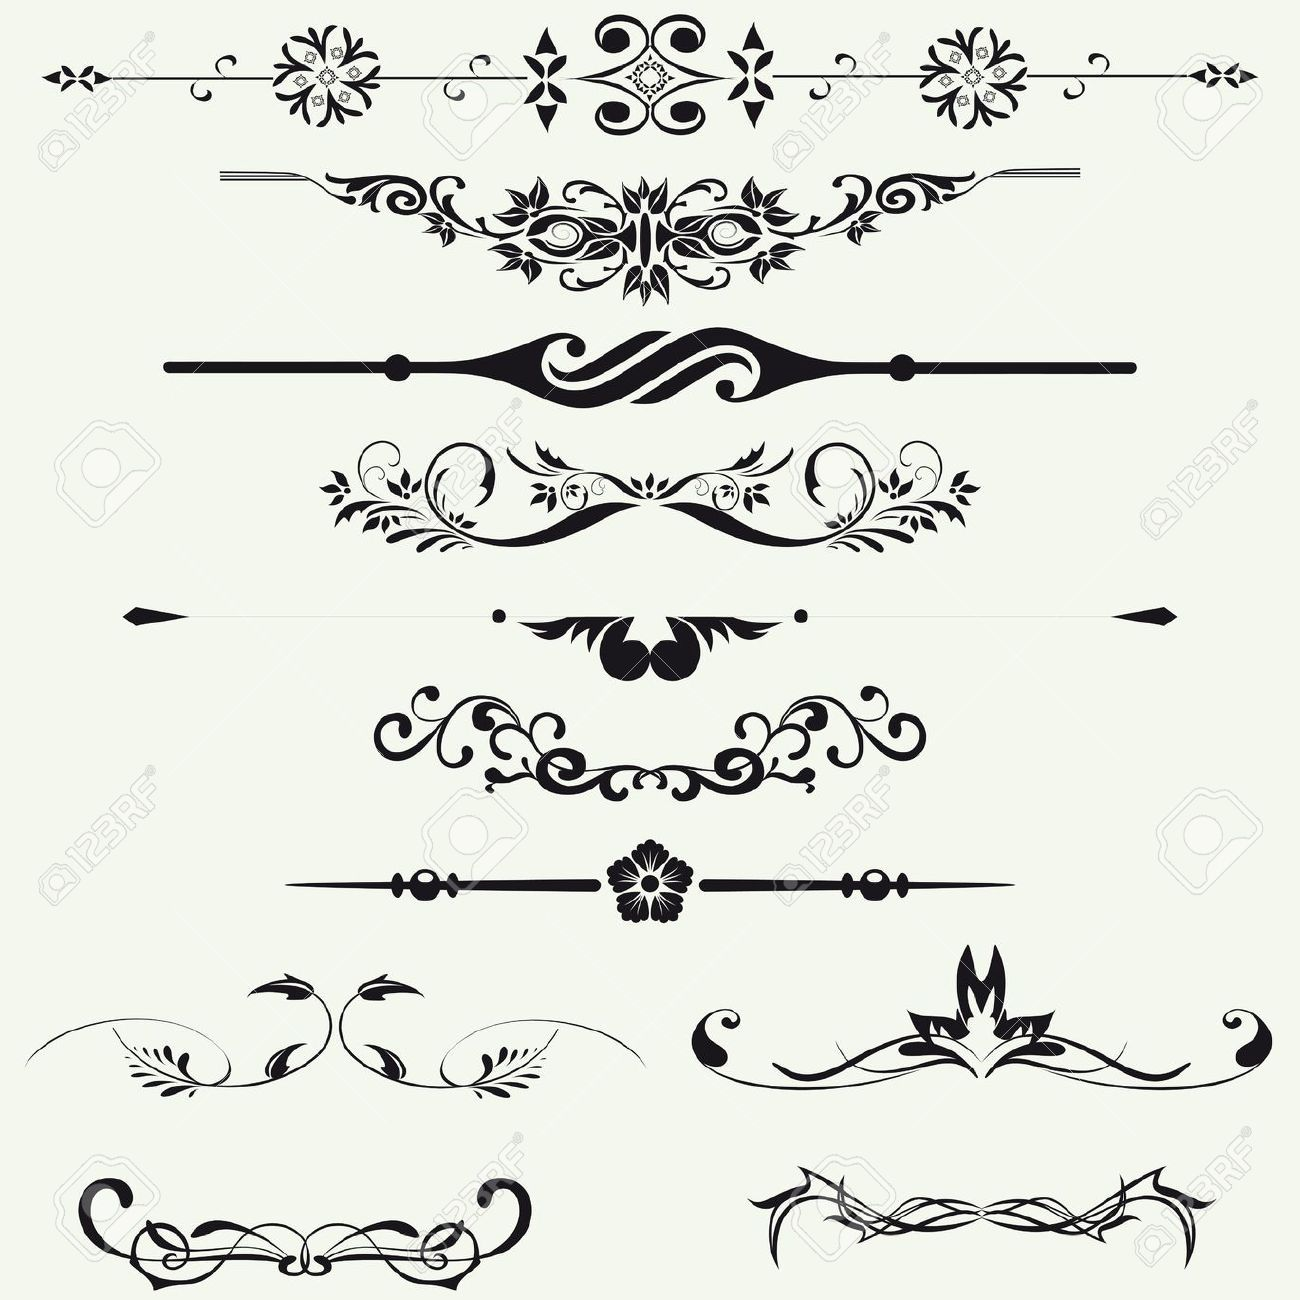 Borders And Elements For Design Vector Clip Art Borders Flower Doodles Inspirational Tattoos